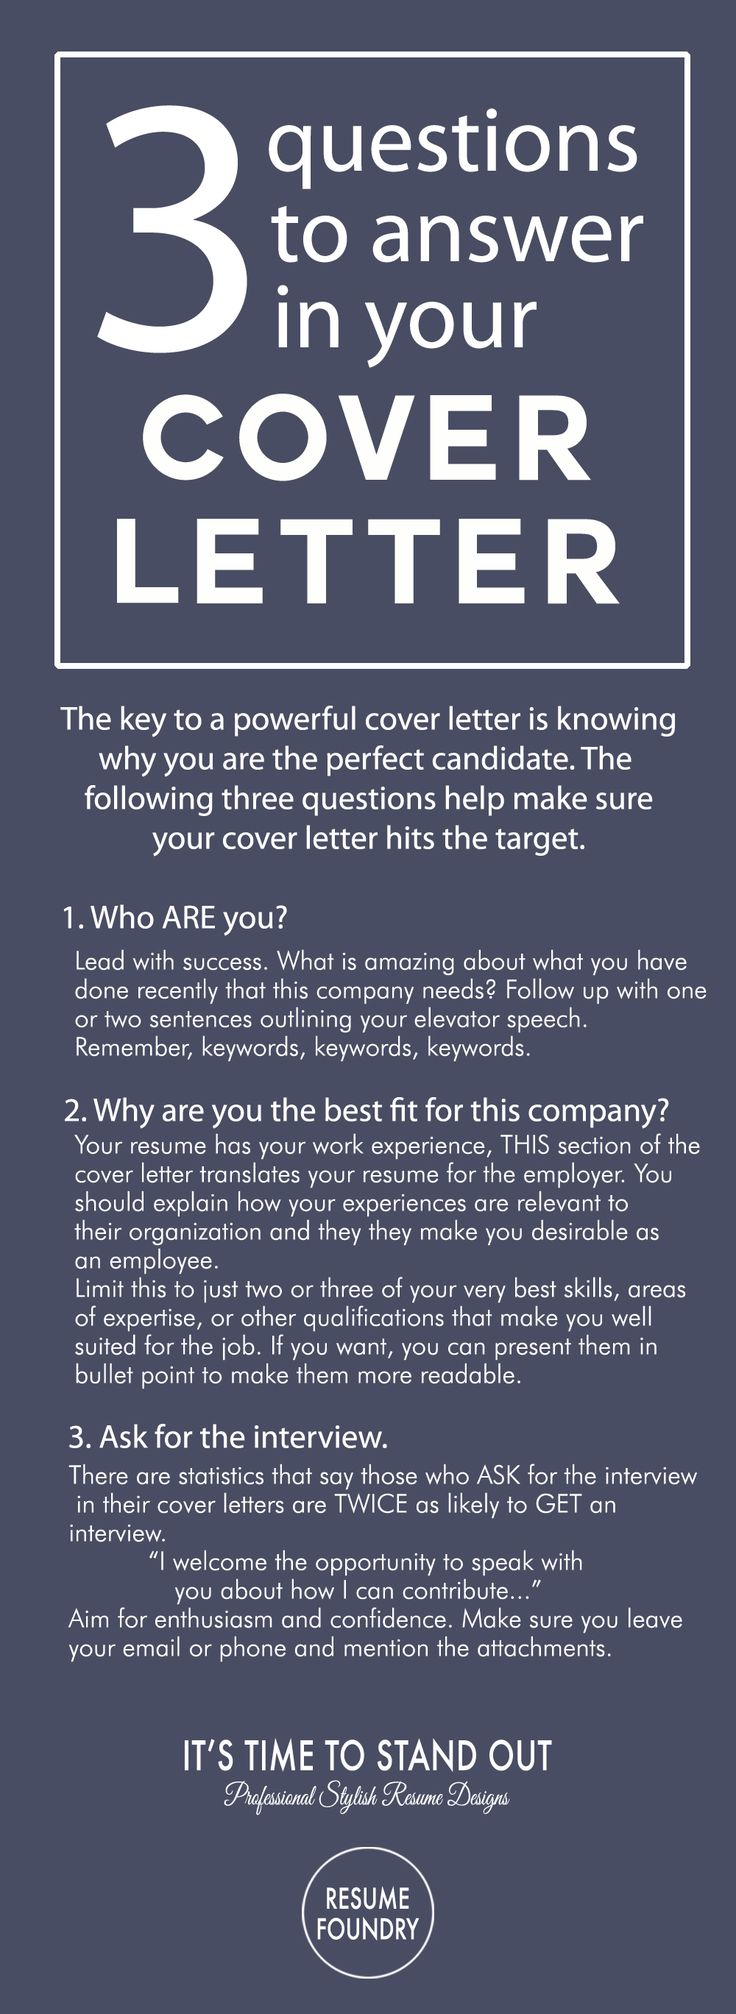 Things To Say In A Cover Letter For A Job Cover Letter Template For